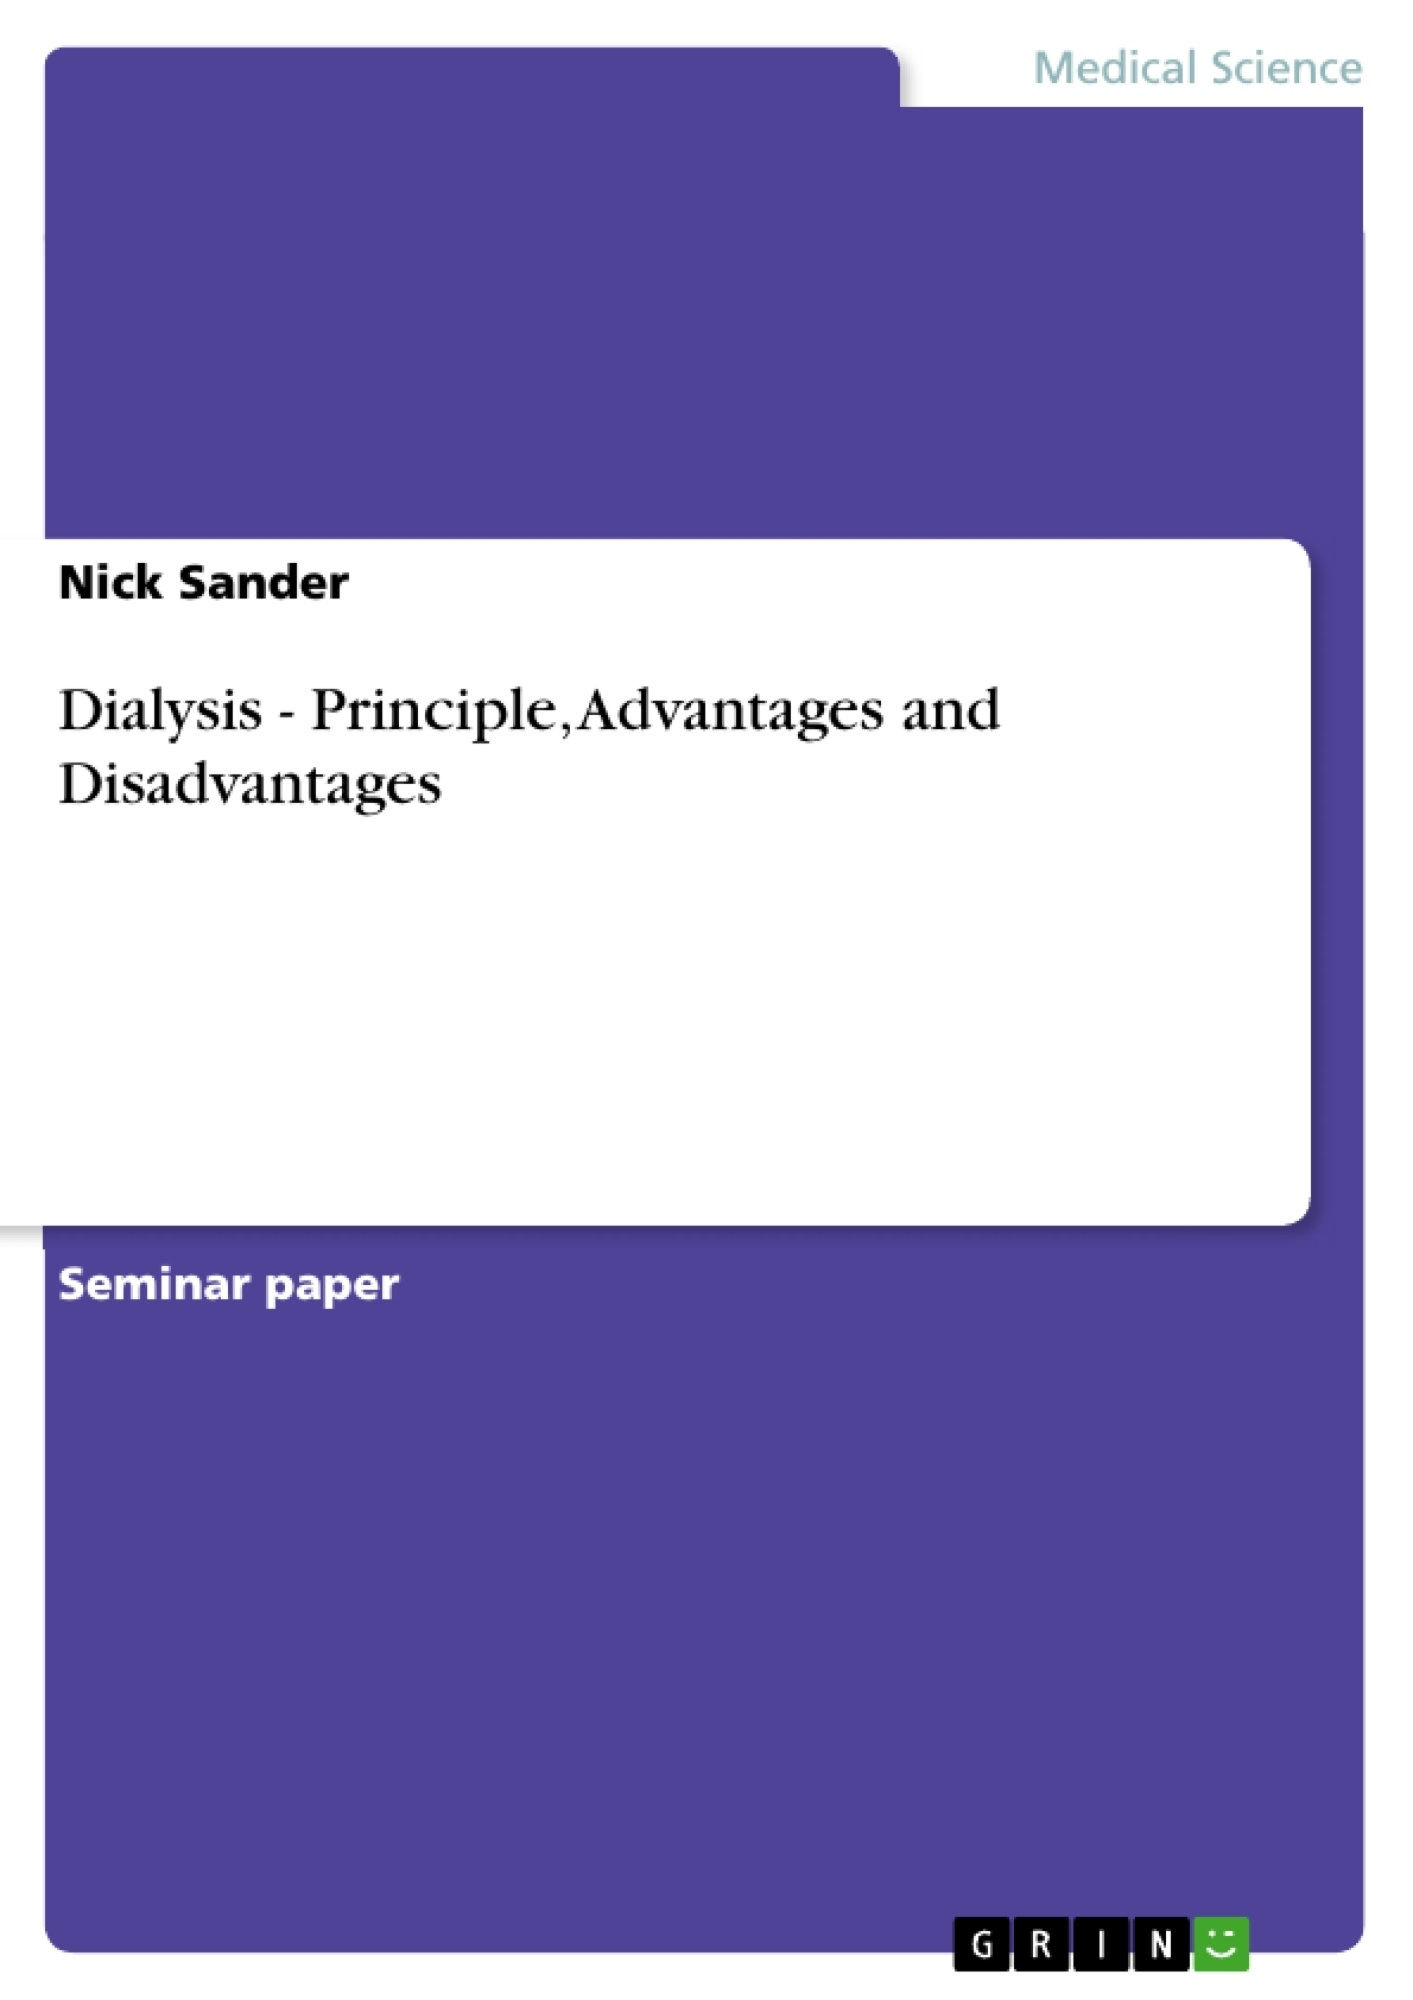 Title: Dialysis - Principle, Advantages and Disadvantages